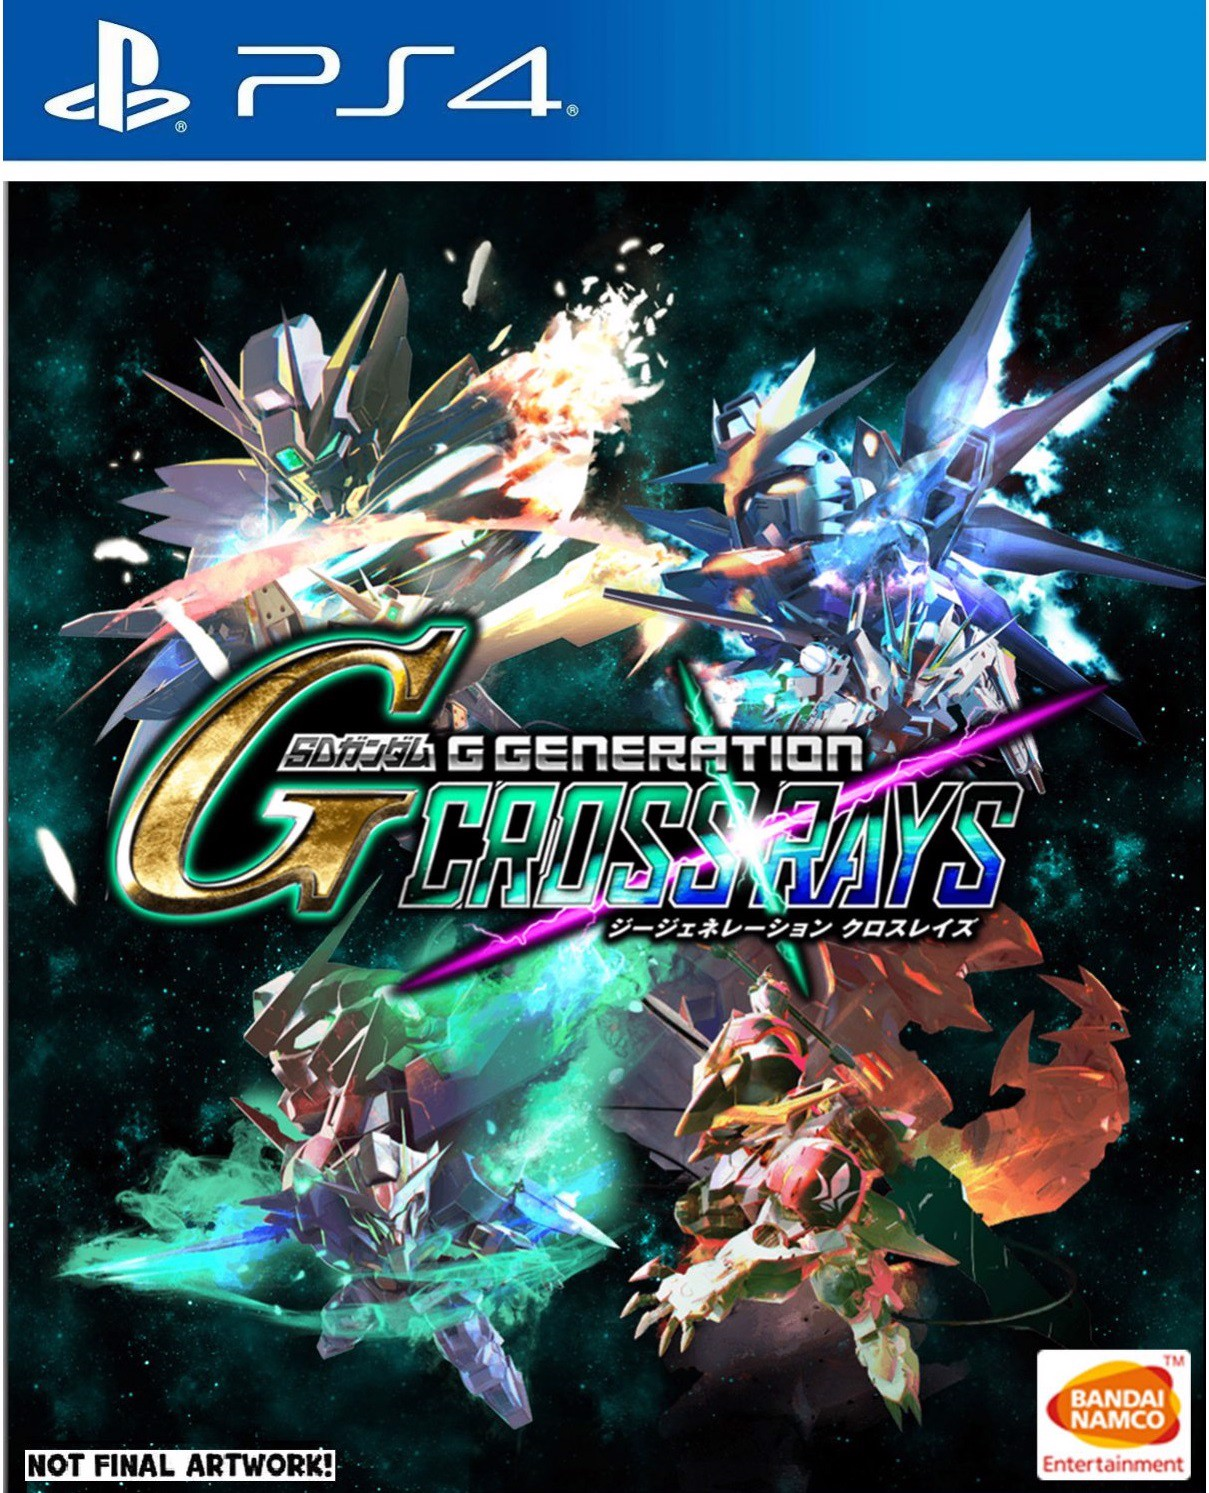 769 - SD Gundam G Generation Cross Rays